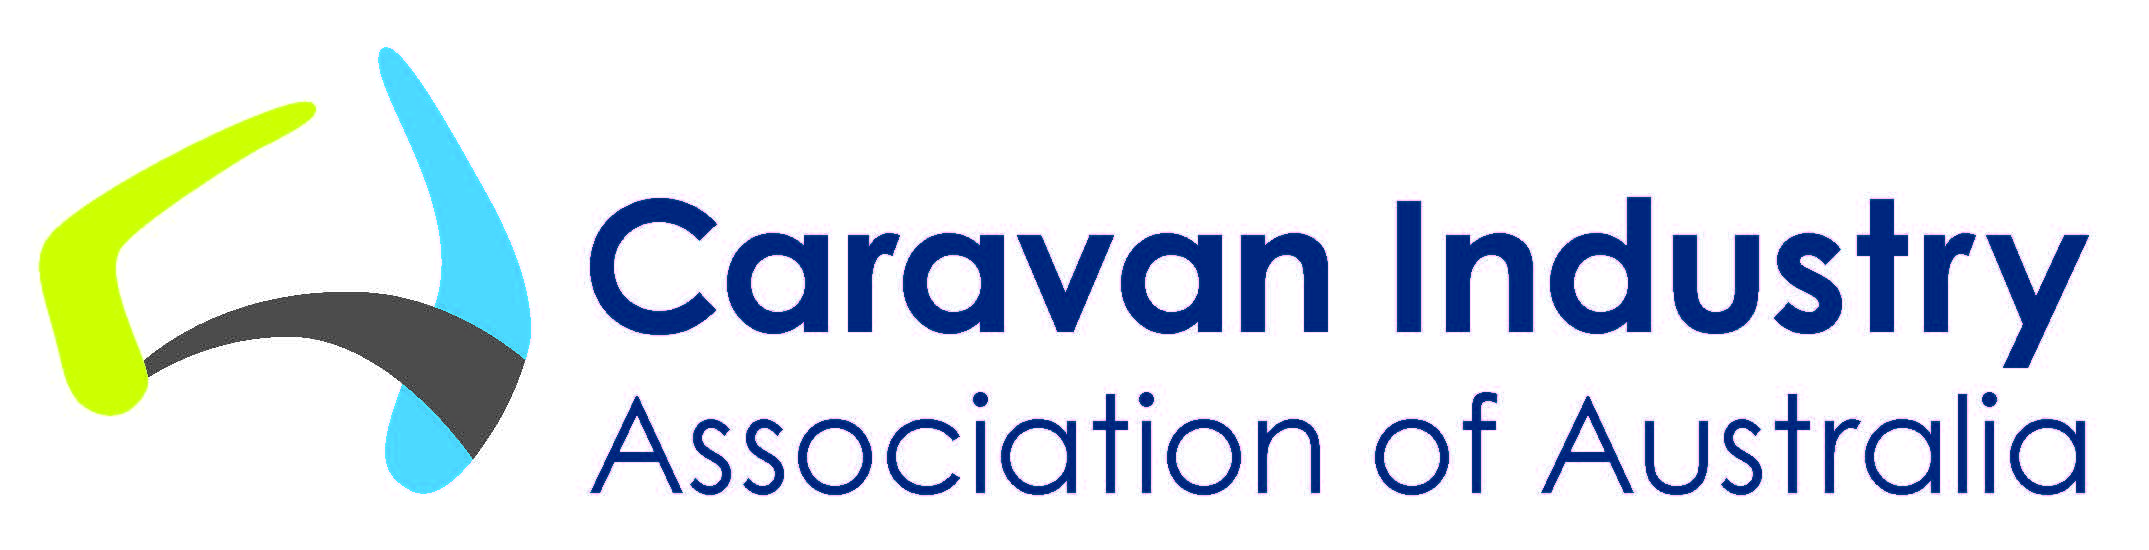 Caravan Industry Association of Australia